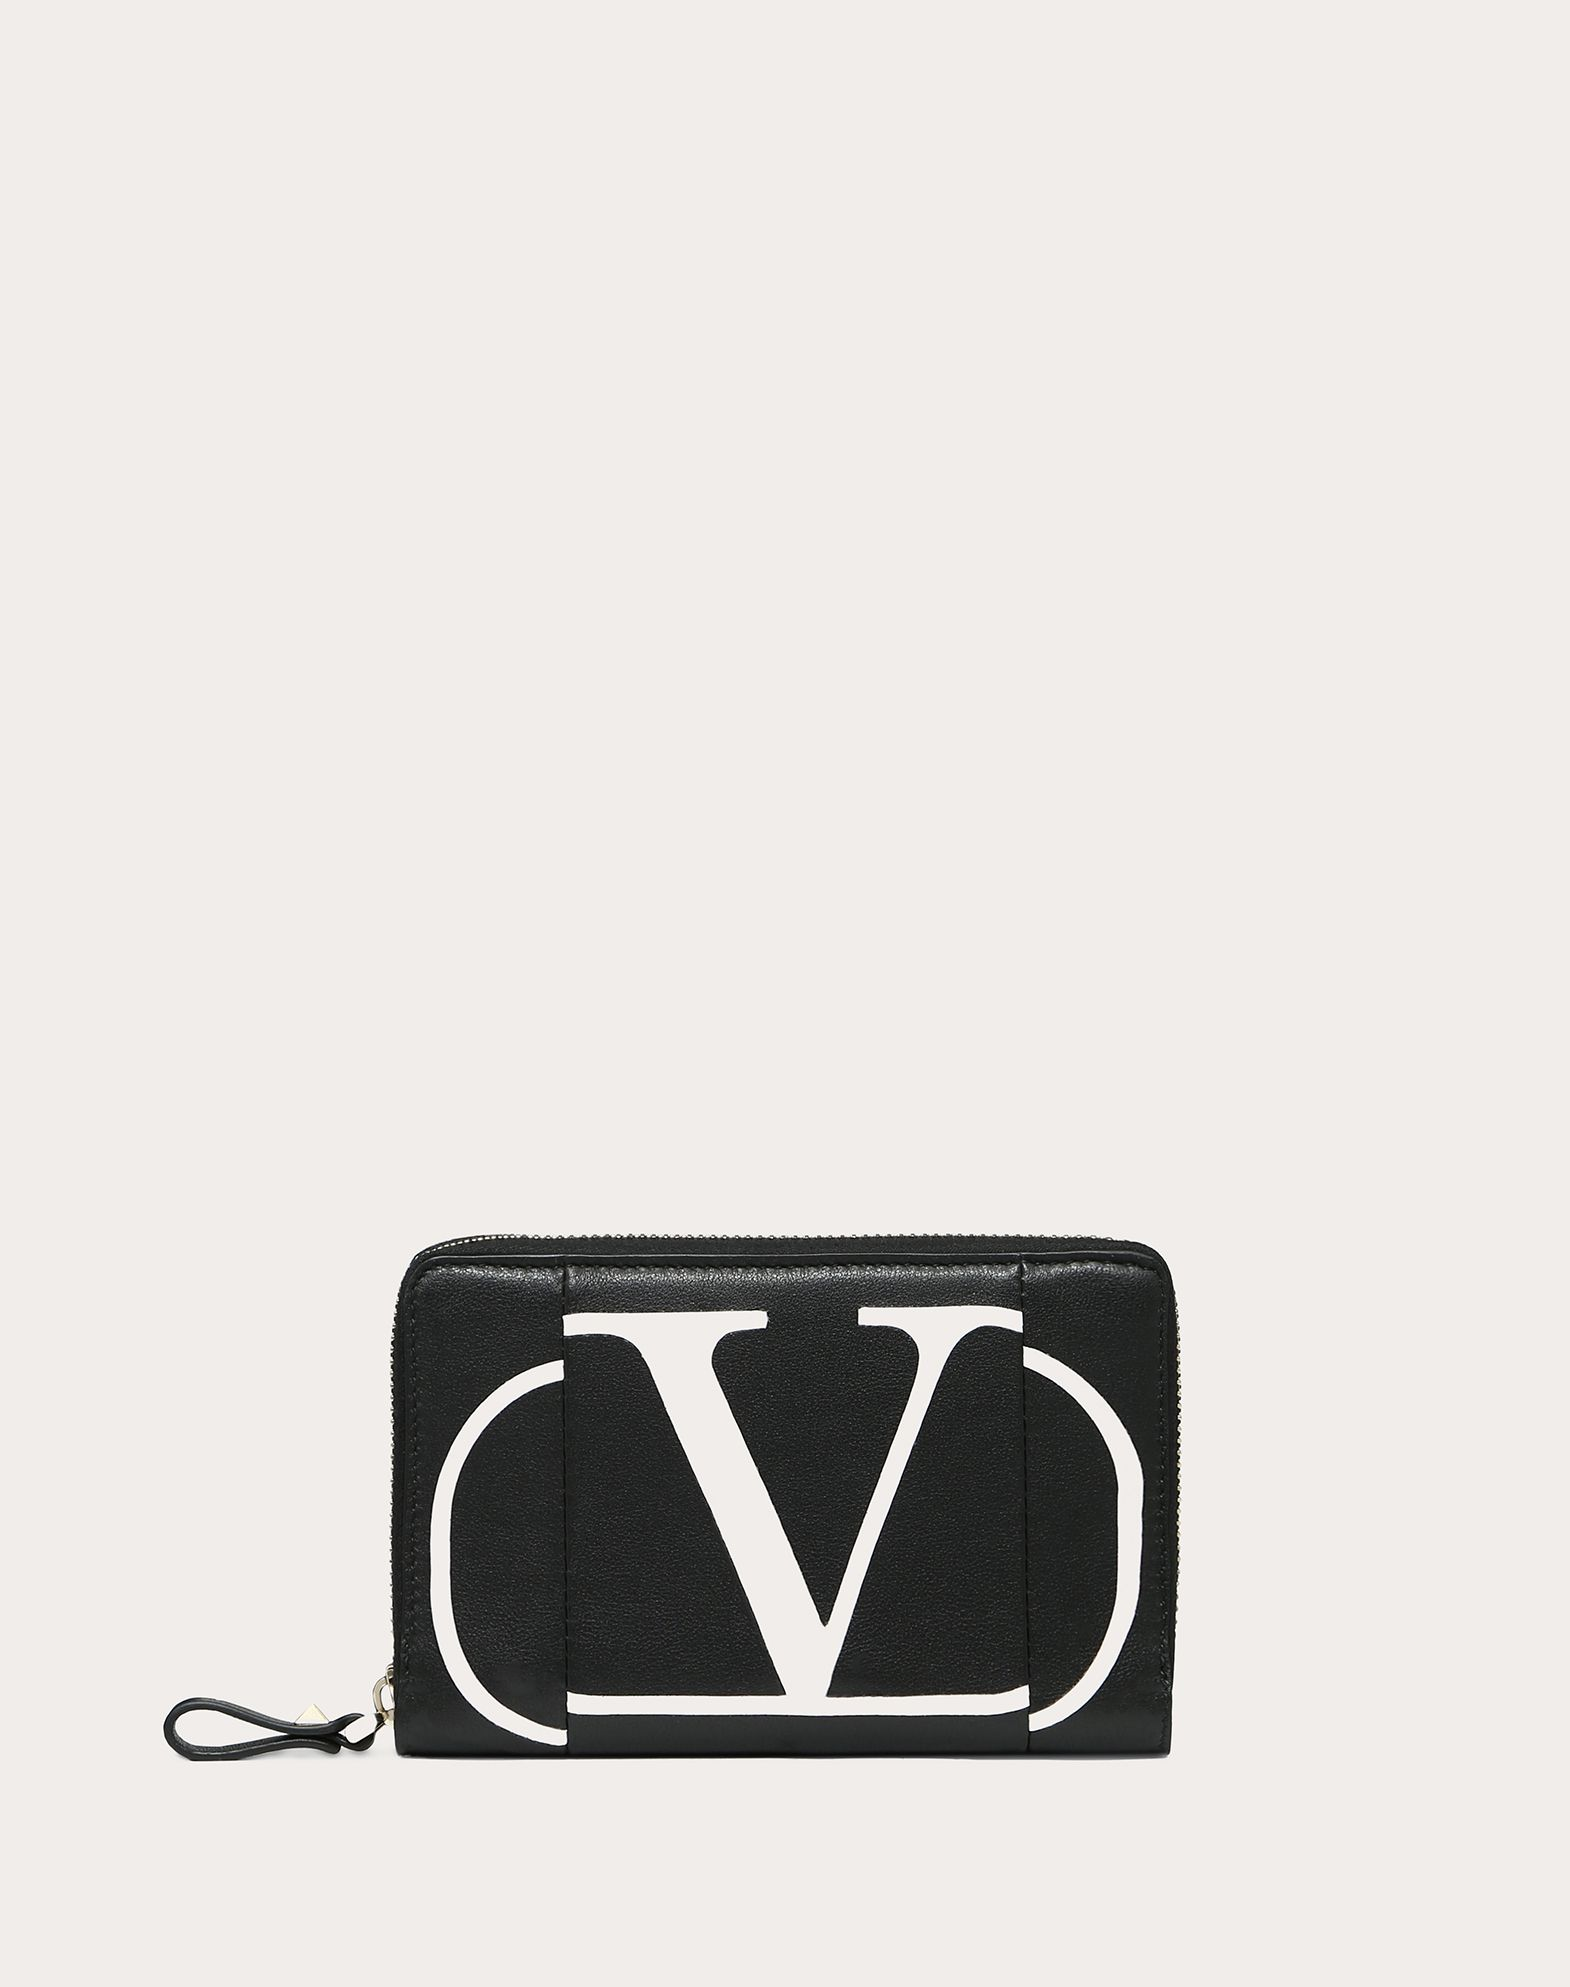 VLOGO Inlay Zippered Wallet